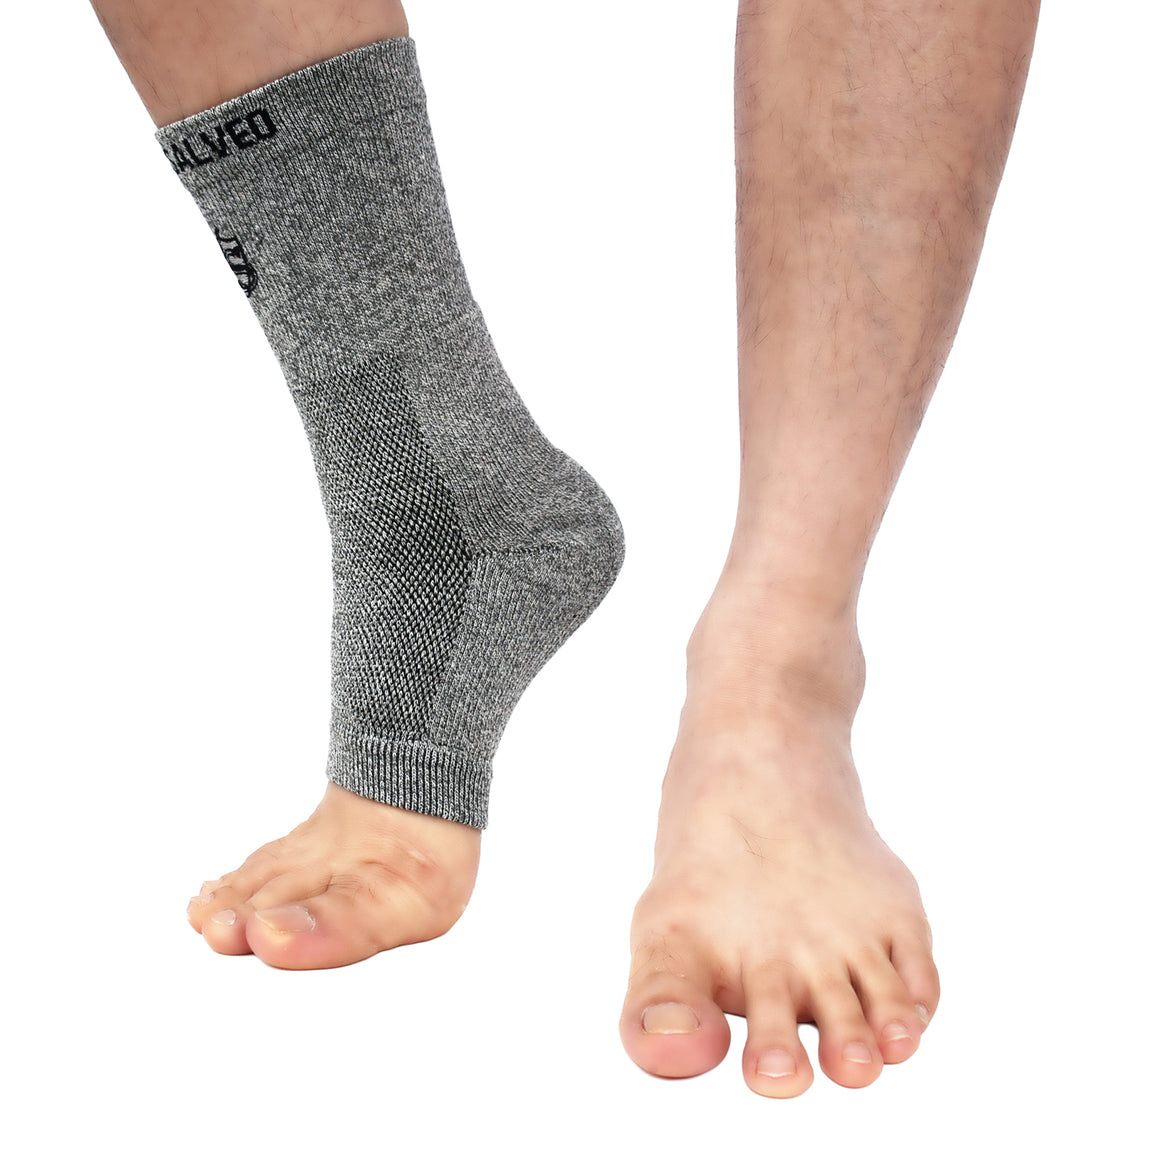 Brace-Bamboo Charcoal and Germanium Ankle Sleeve - Vital Salveo